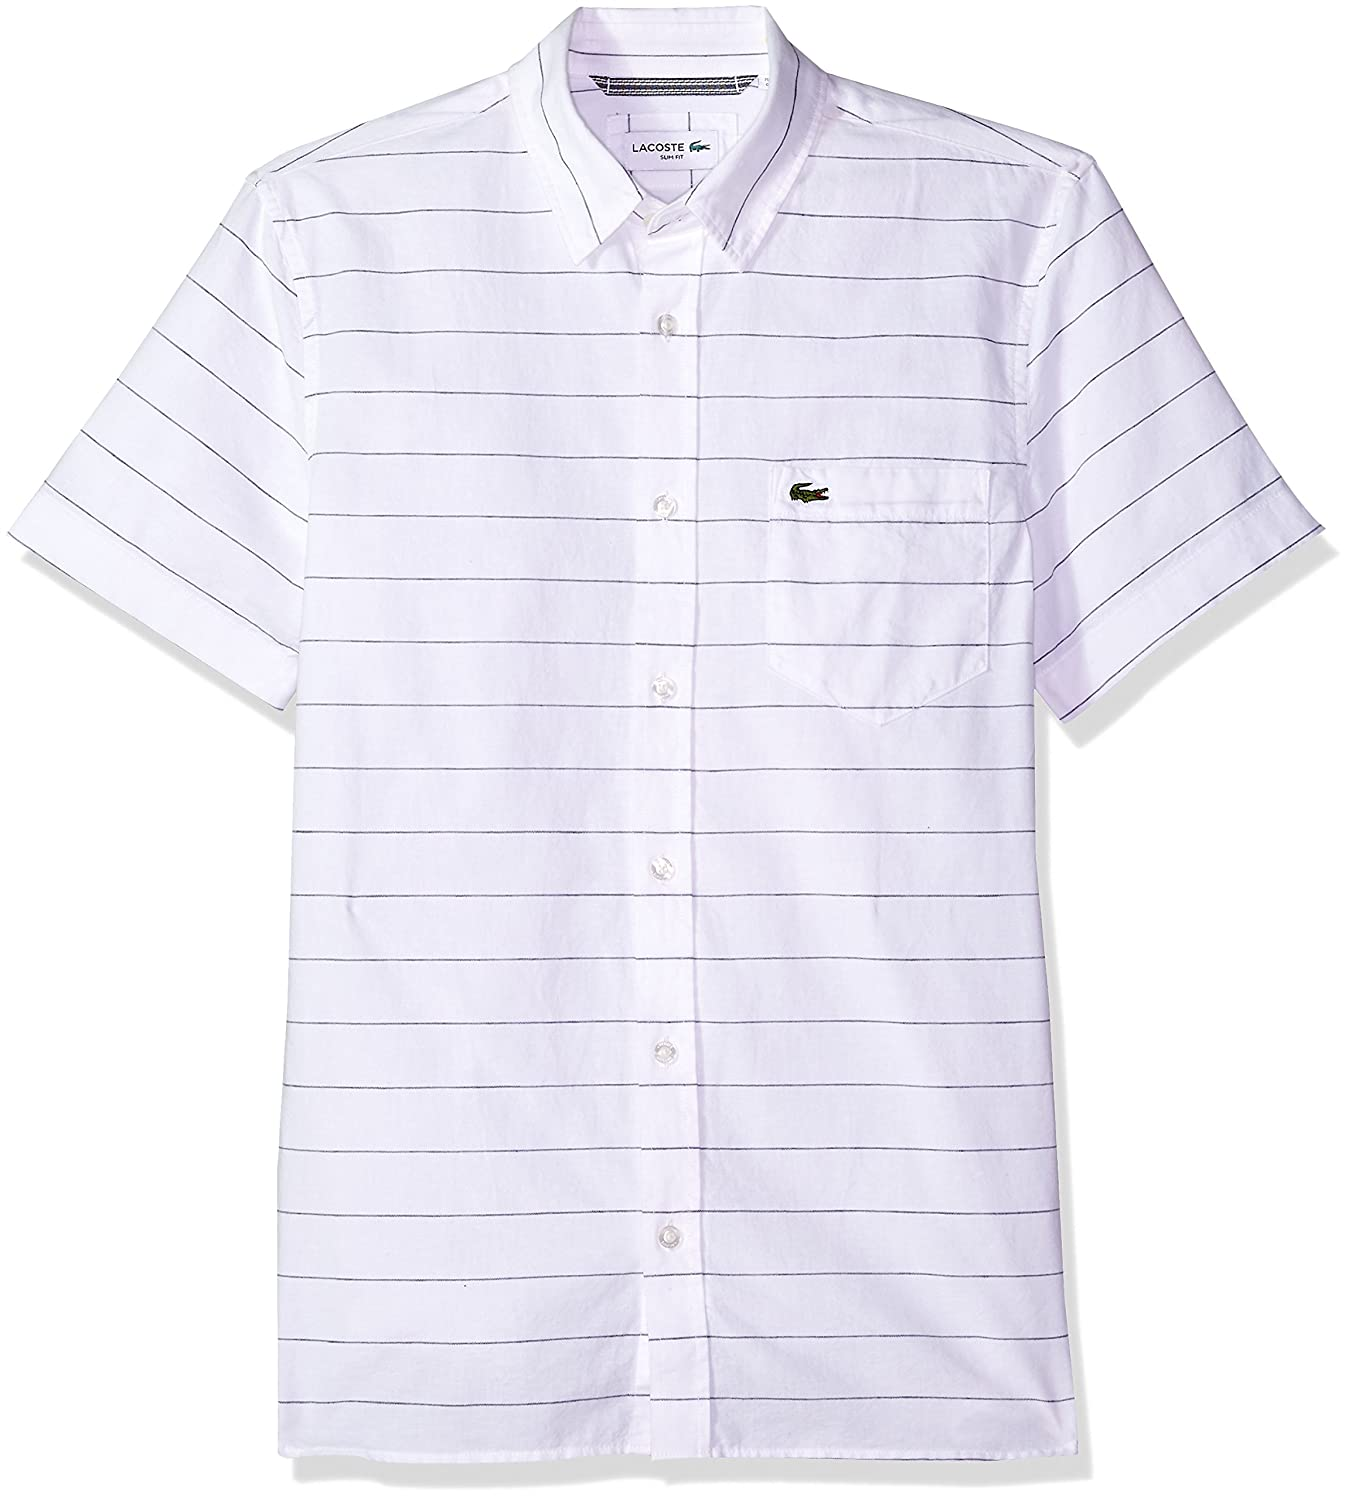 Lacoste Mens Short Sleeve Striped Button Down Collar Slim Woven Shirt, CH4966 at Amazon Mens Clothing store: